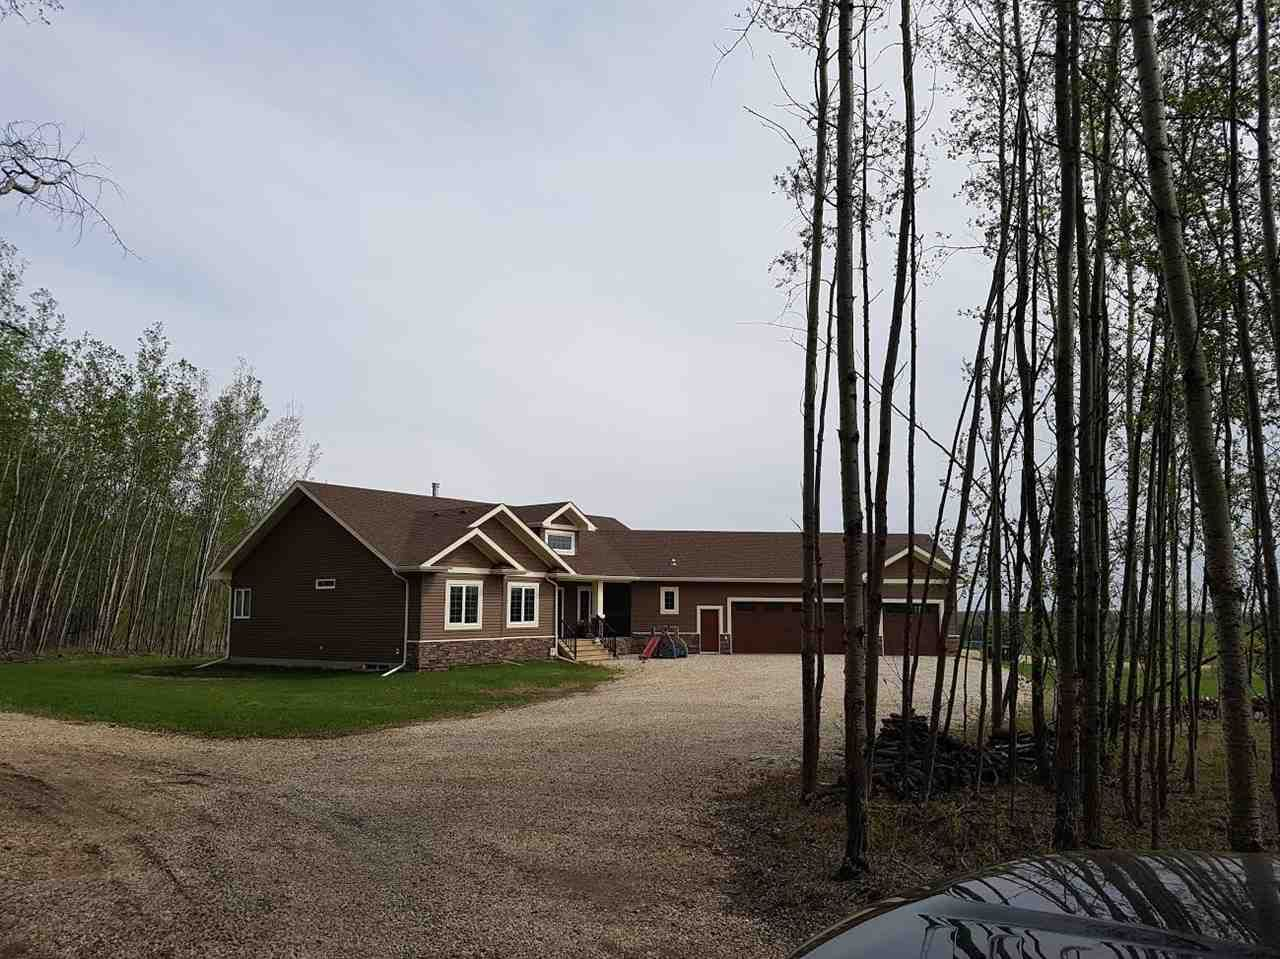 Main Photo: 31 1319 TWP RD 510: Rural Parkland County House for sale : MLS®# E4151734